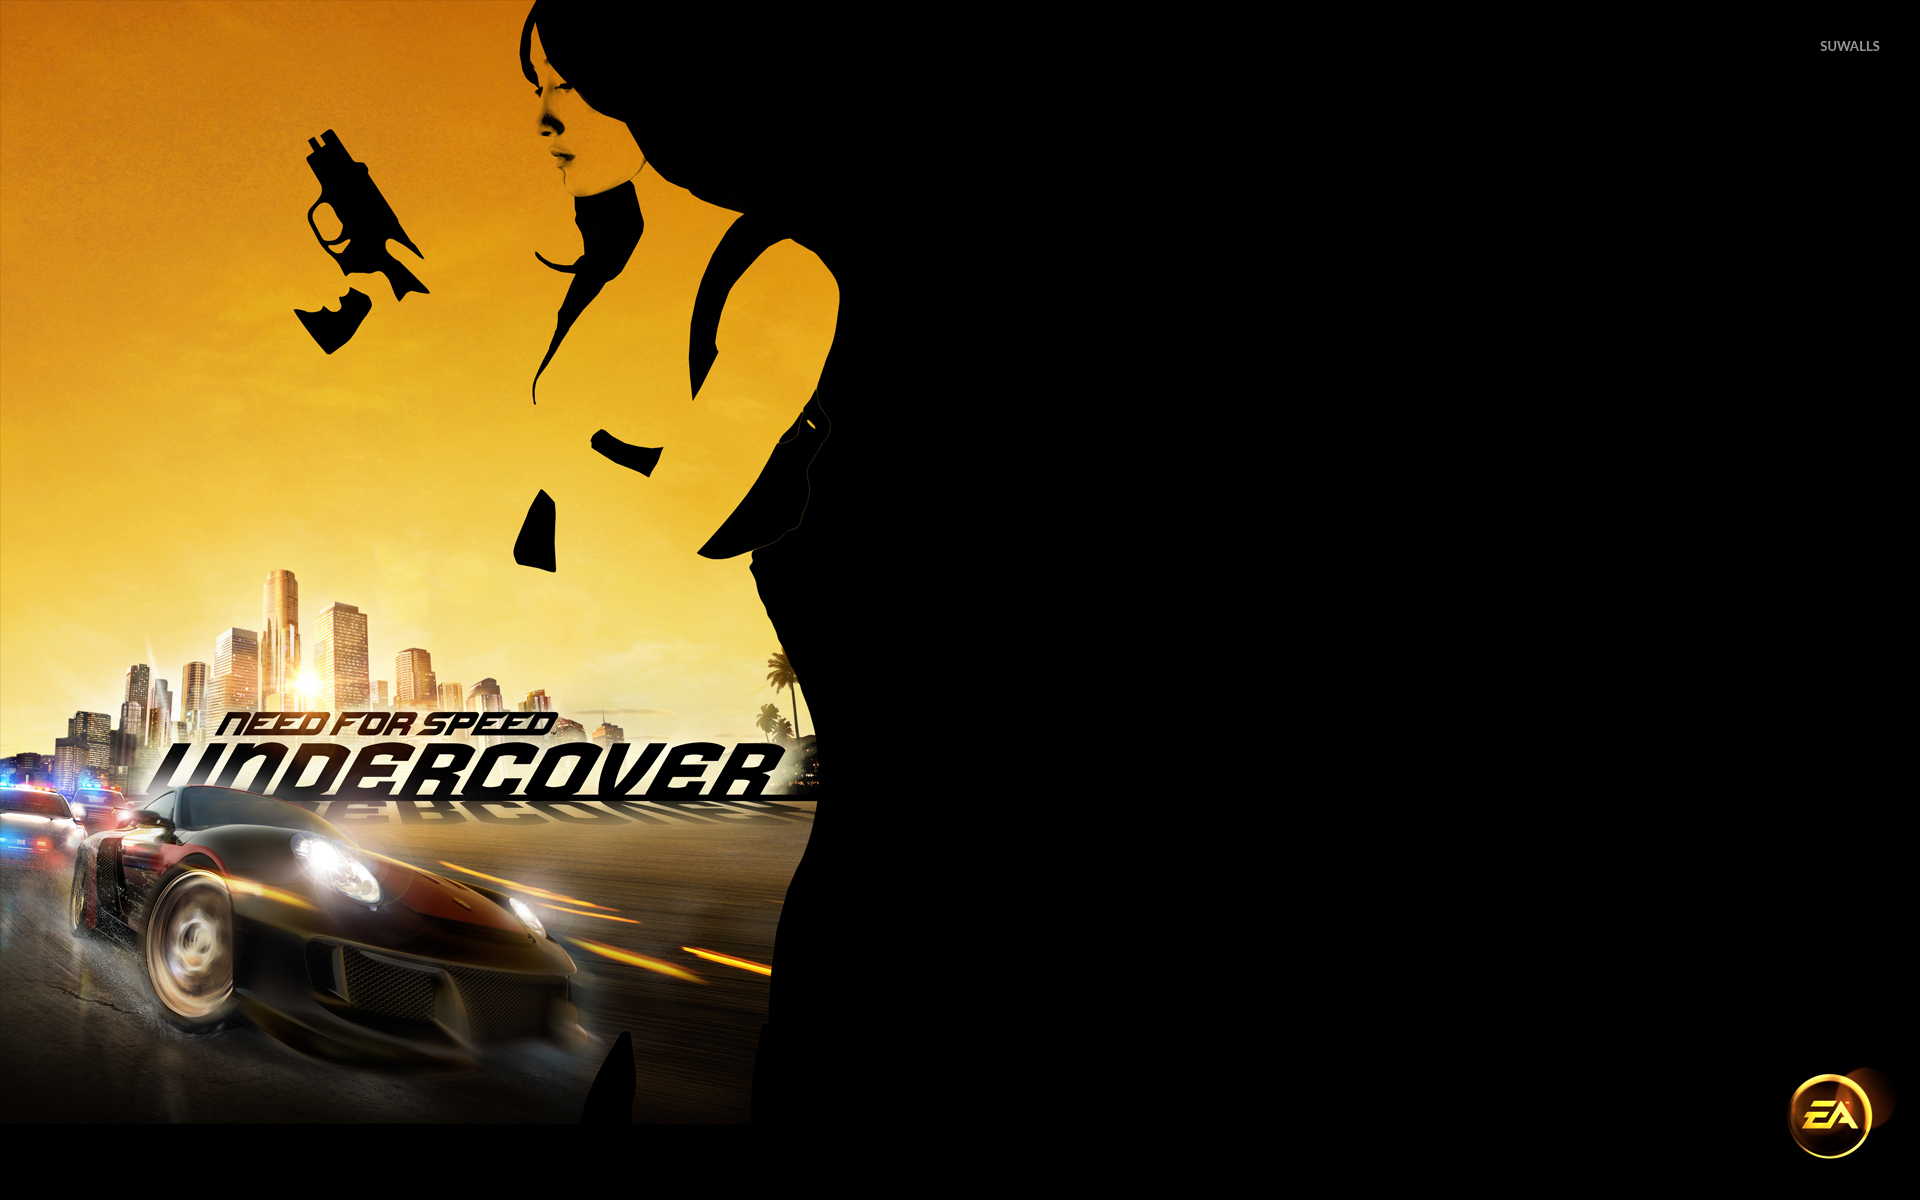 Need for Speed: Undercover [2] wallpaper - Game wallpapers - #1528